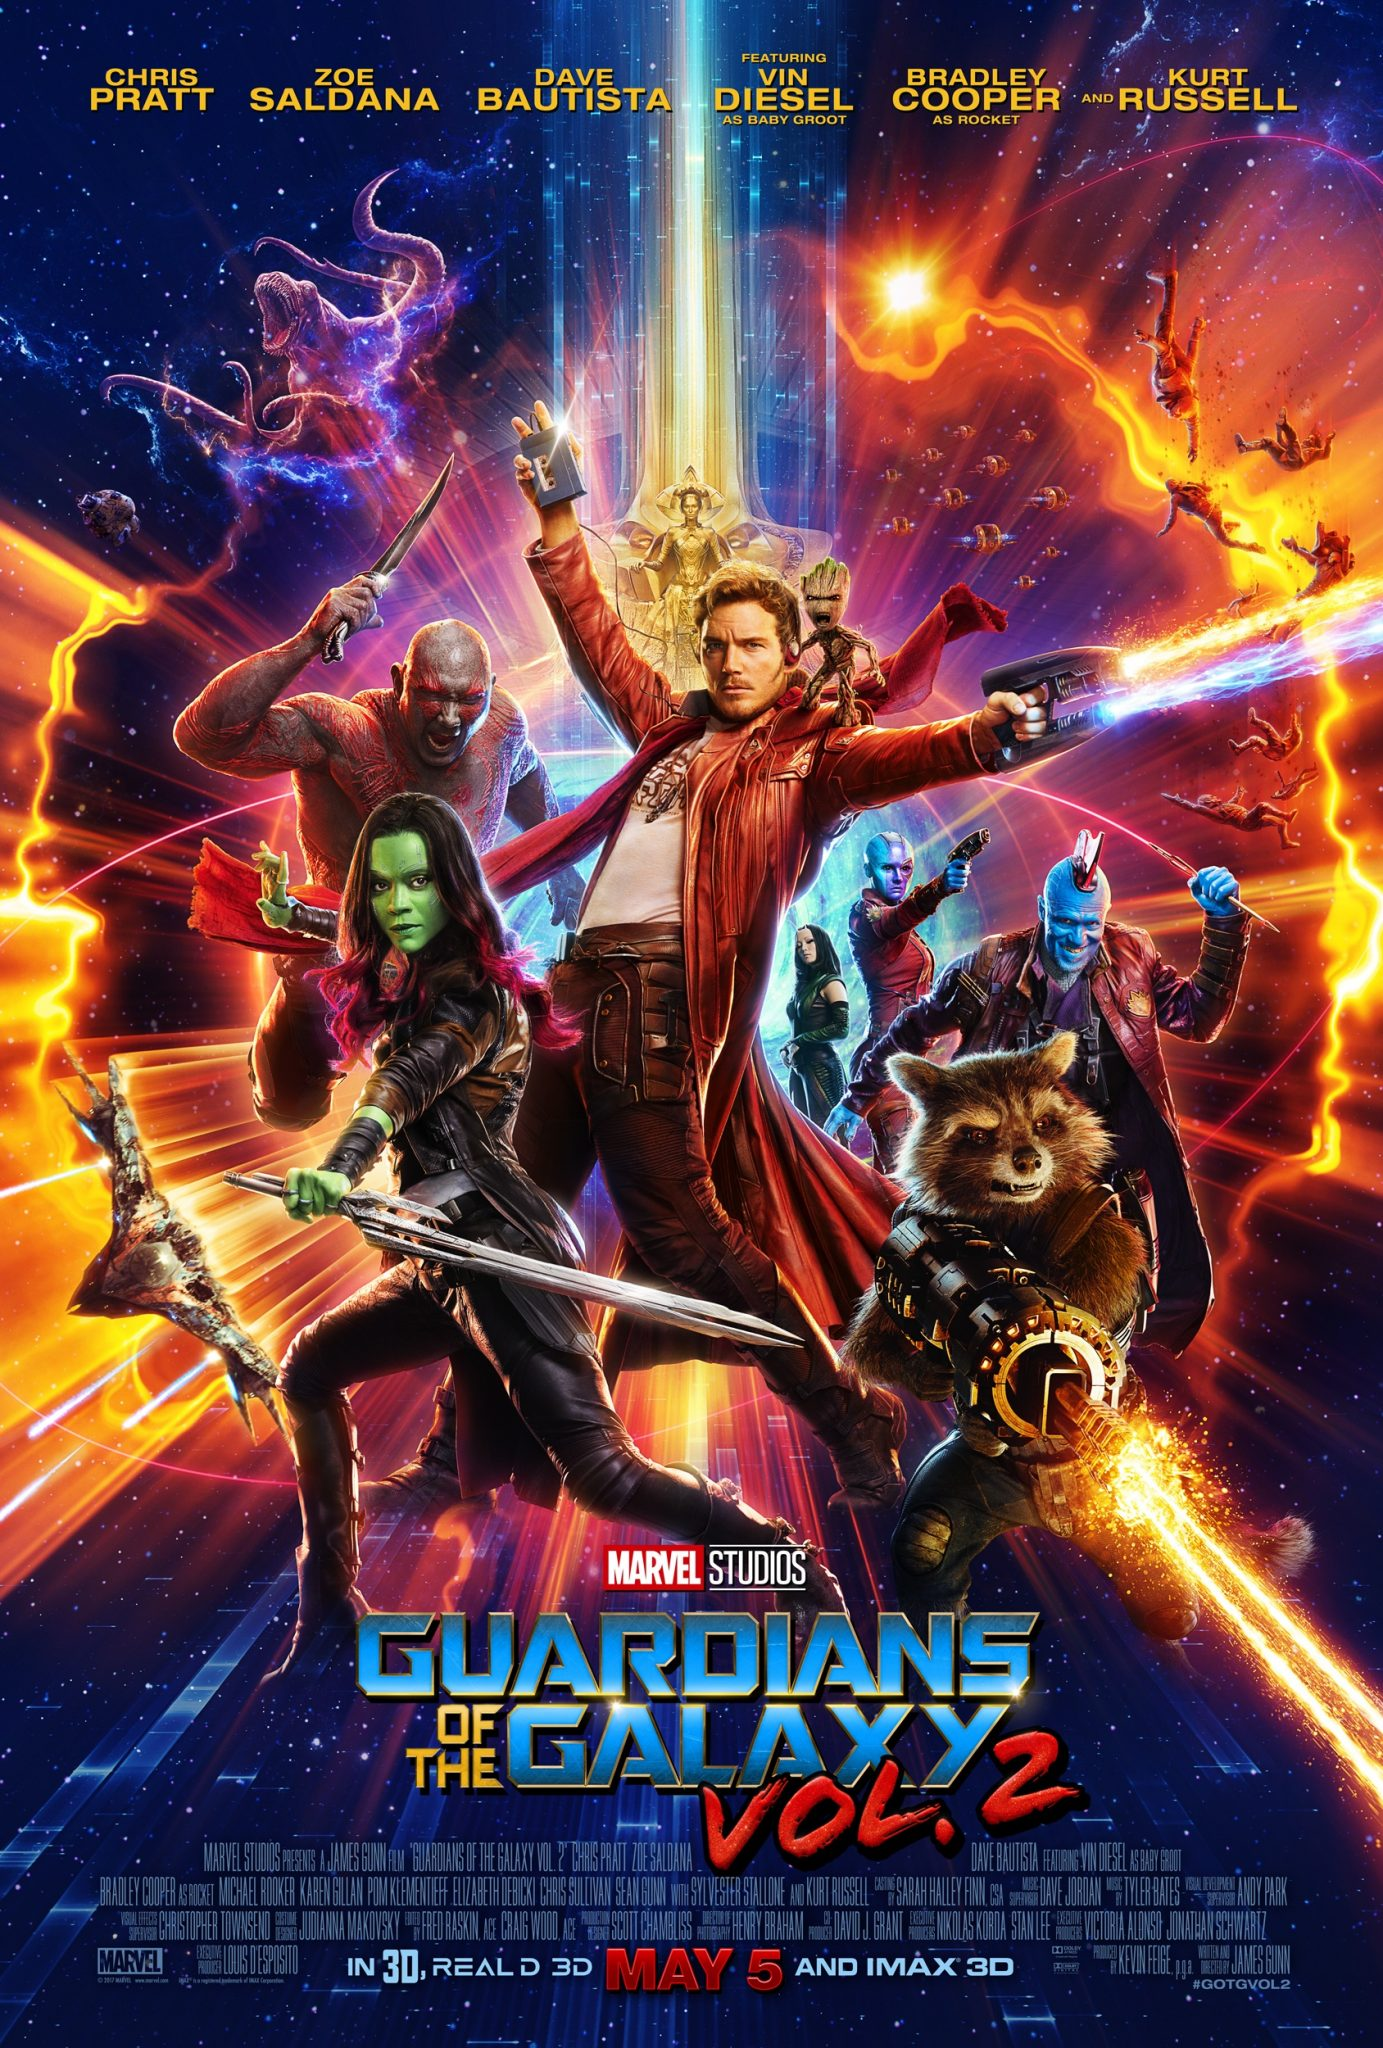 Guardians of the Galaxy Vol 2. Poster